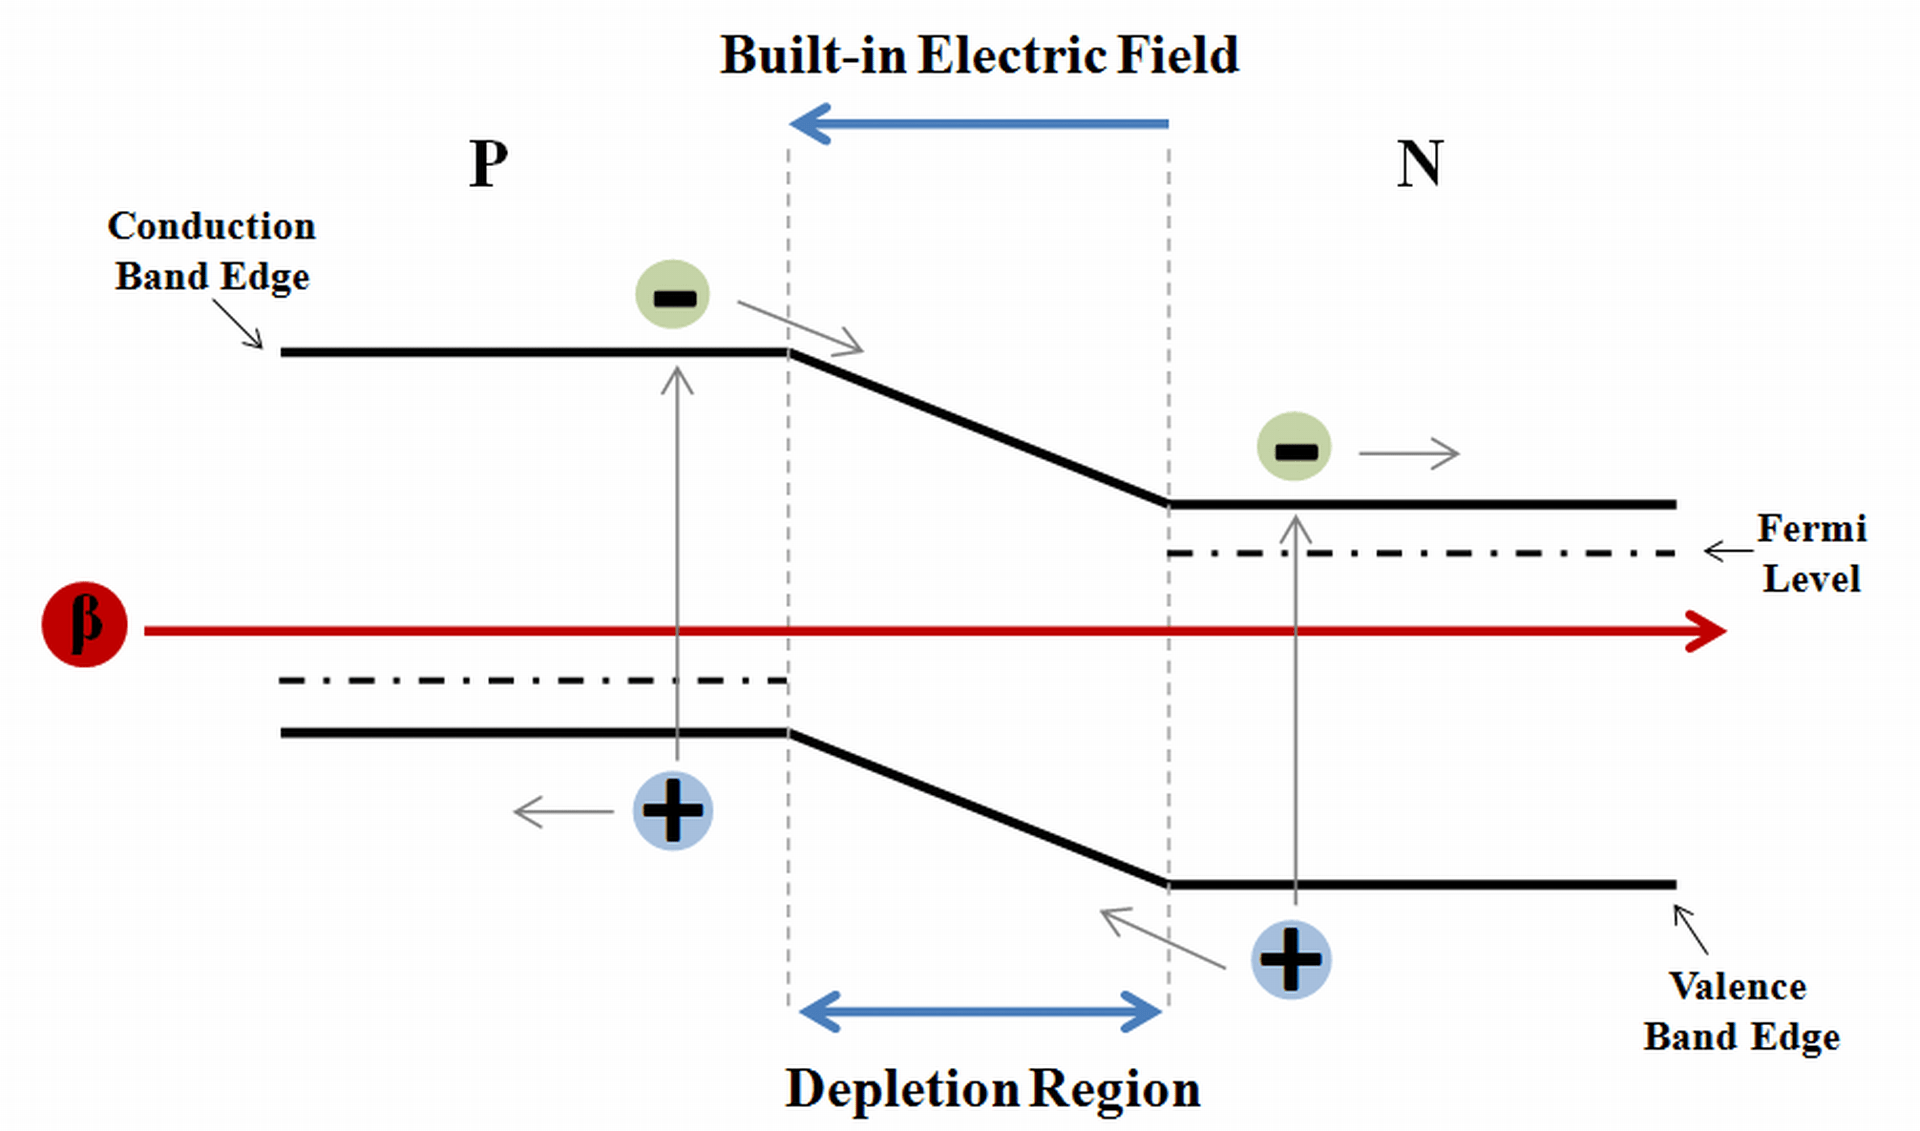 energy band diagram for conductors insulators and semiconductors induction motor wiring betavoltaic devices